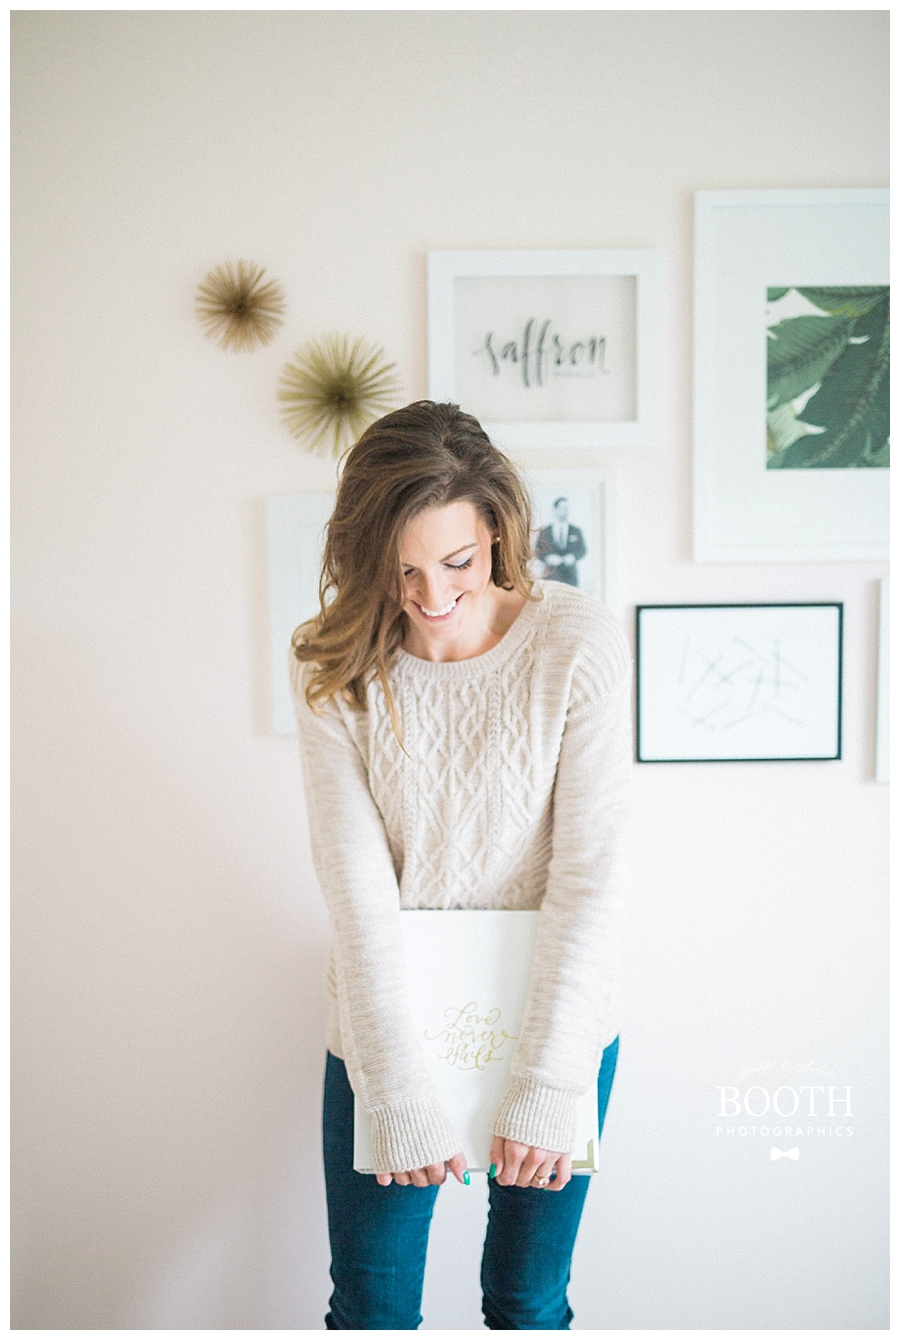 bride smiling and holding her Southern Weddings planner in front of mid century modern inspired gallery wall